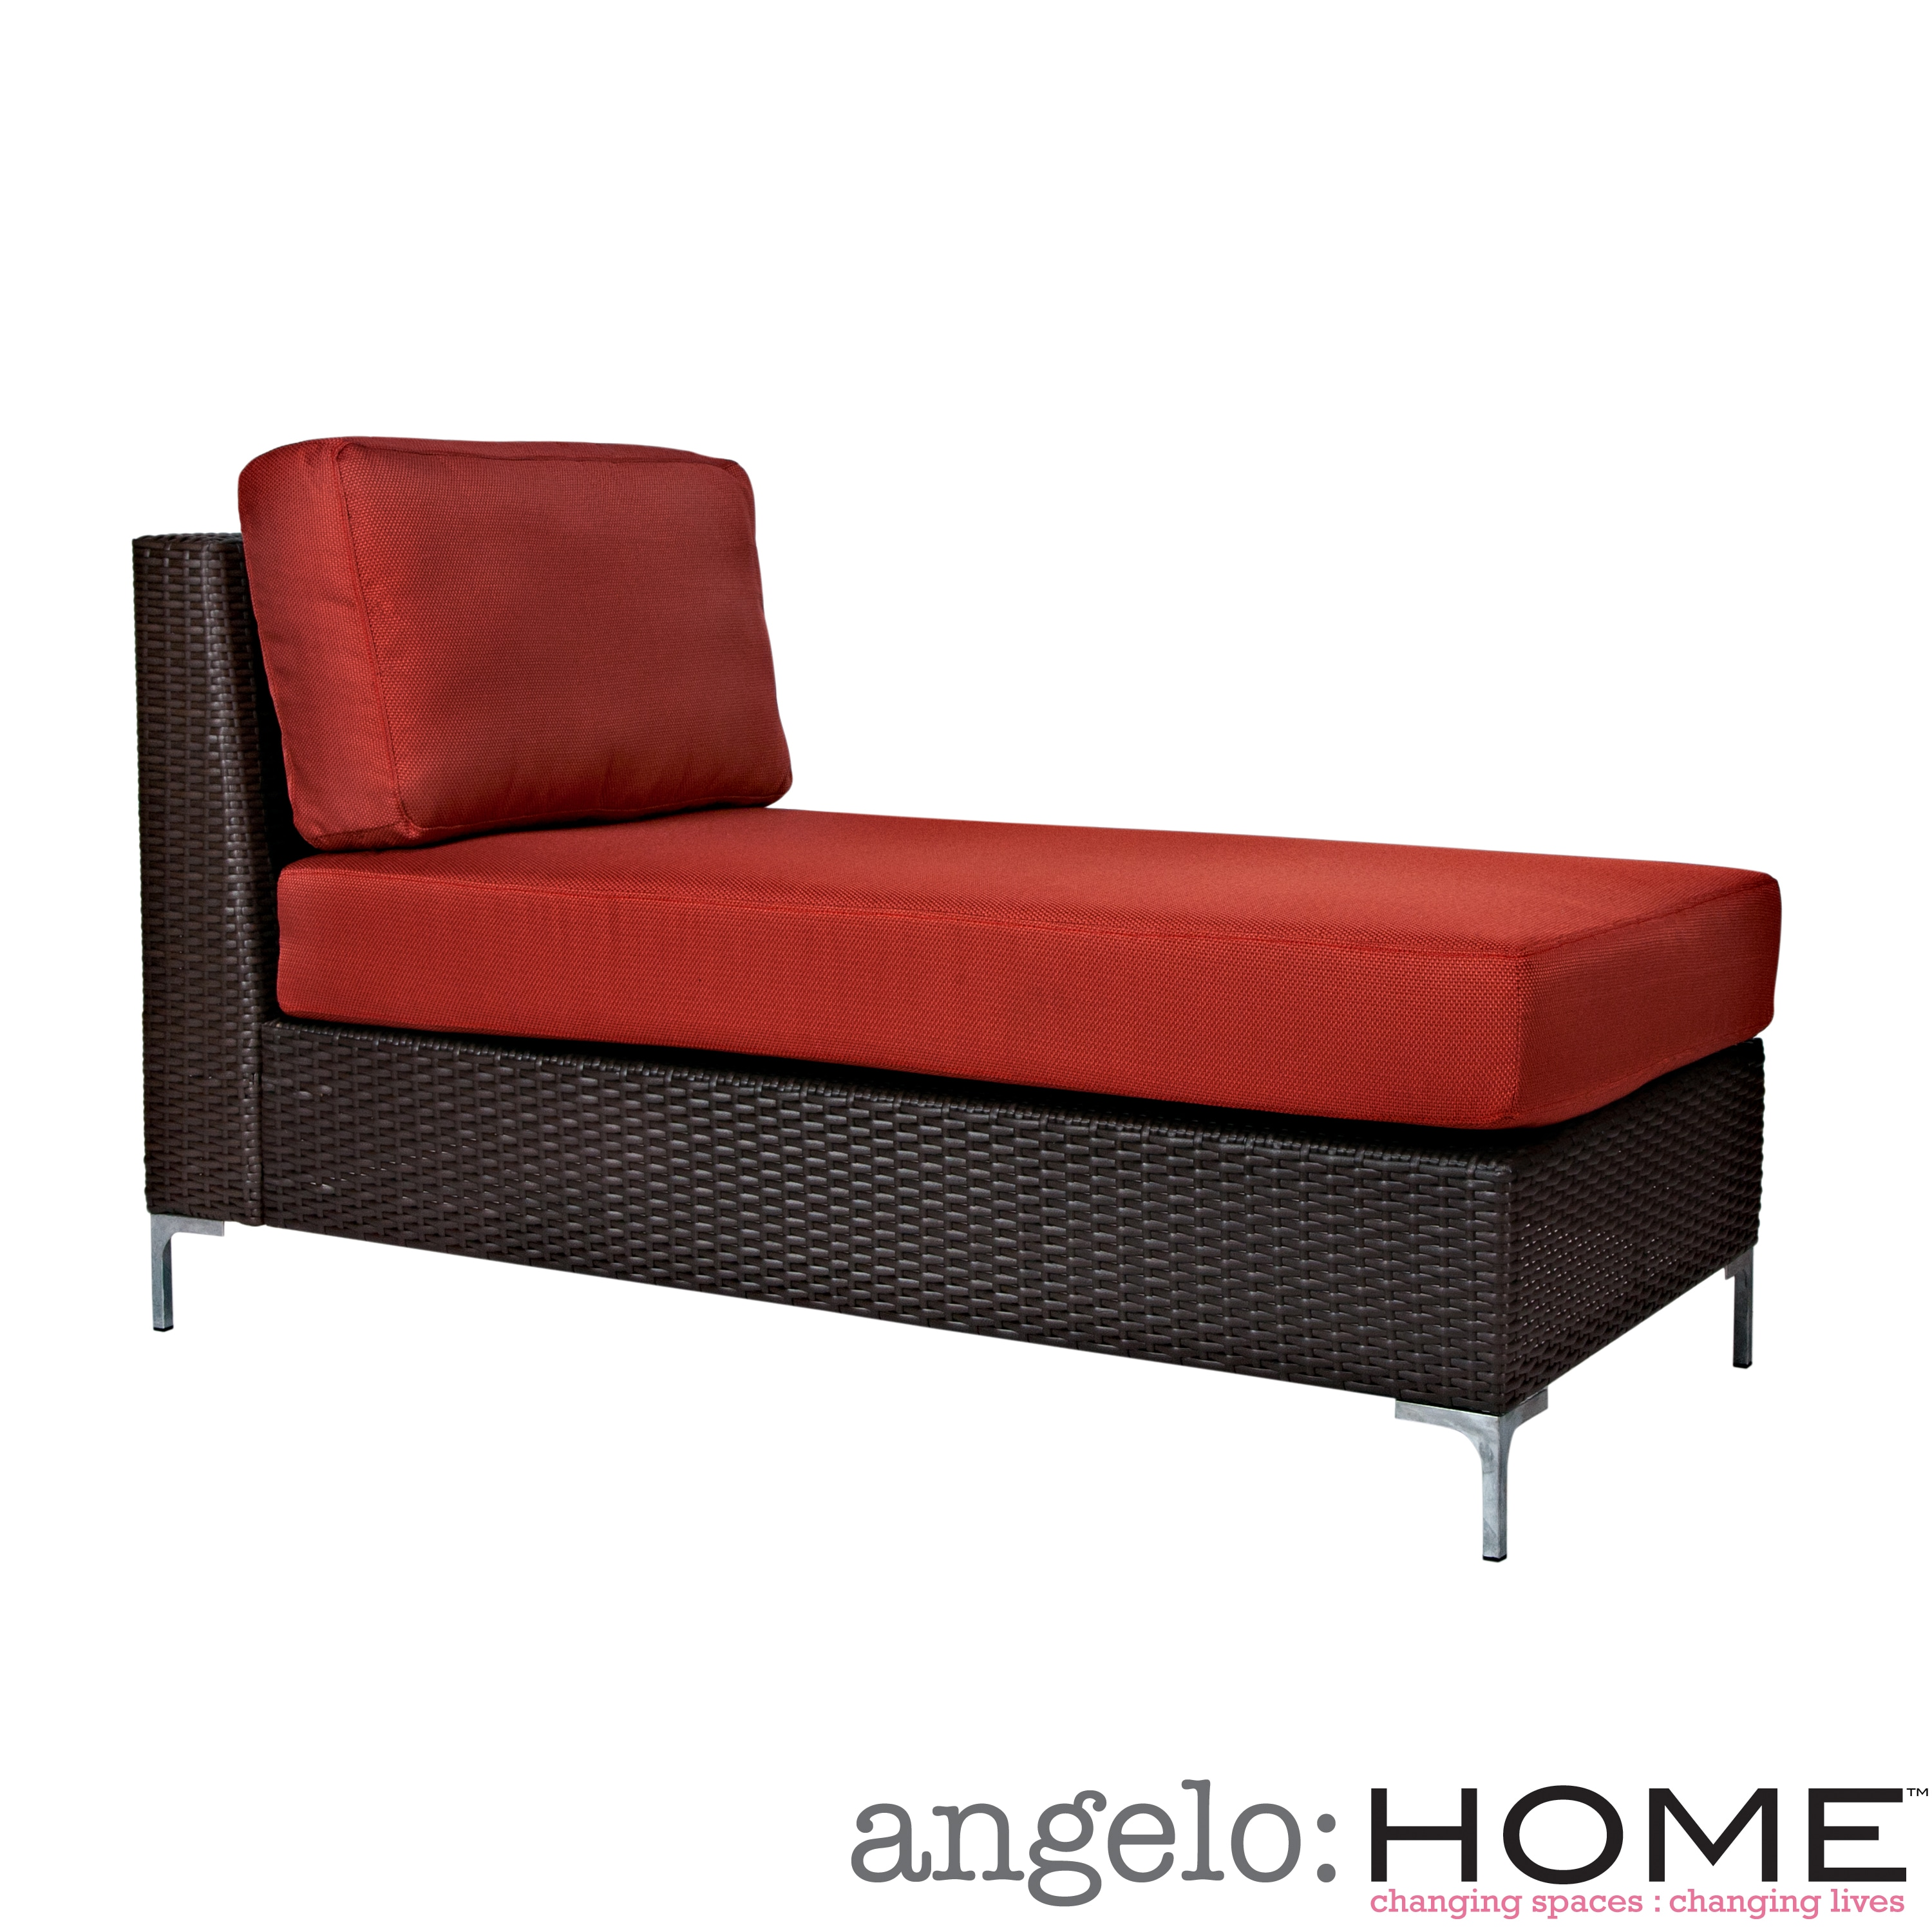 angelo:HOME Napa Springs Resin Wicker Tulip Red Armless Chaise Indoor/Outdoor Resin Wicker